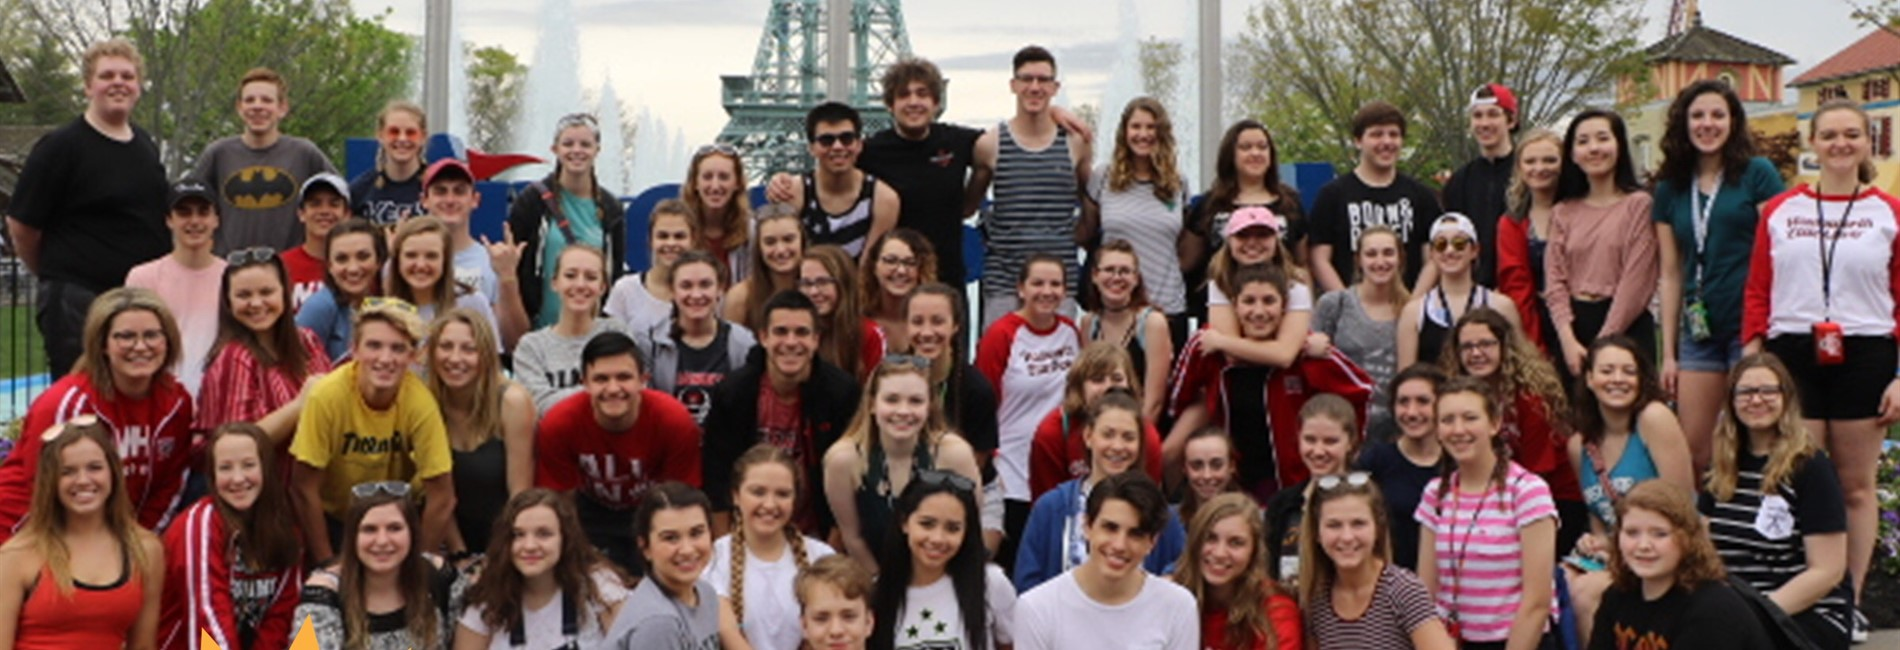 Elite and Show Choirs at Kings Island for Music in the Park!